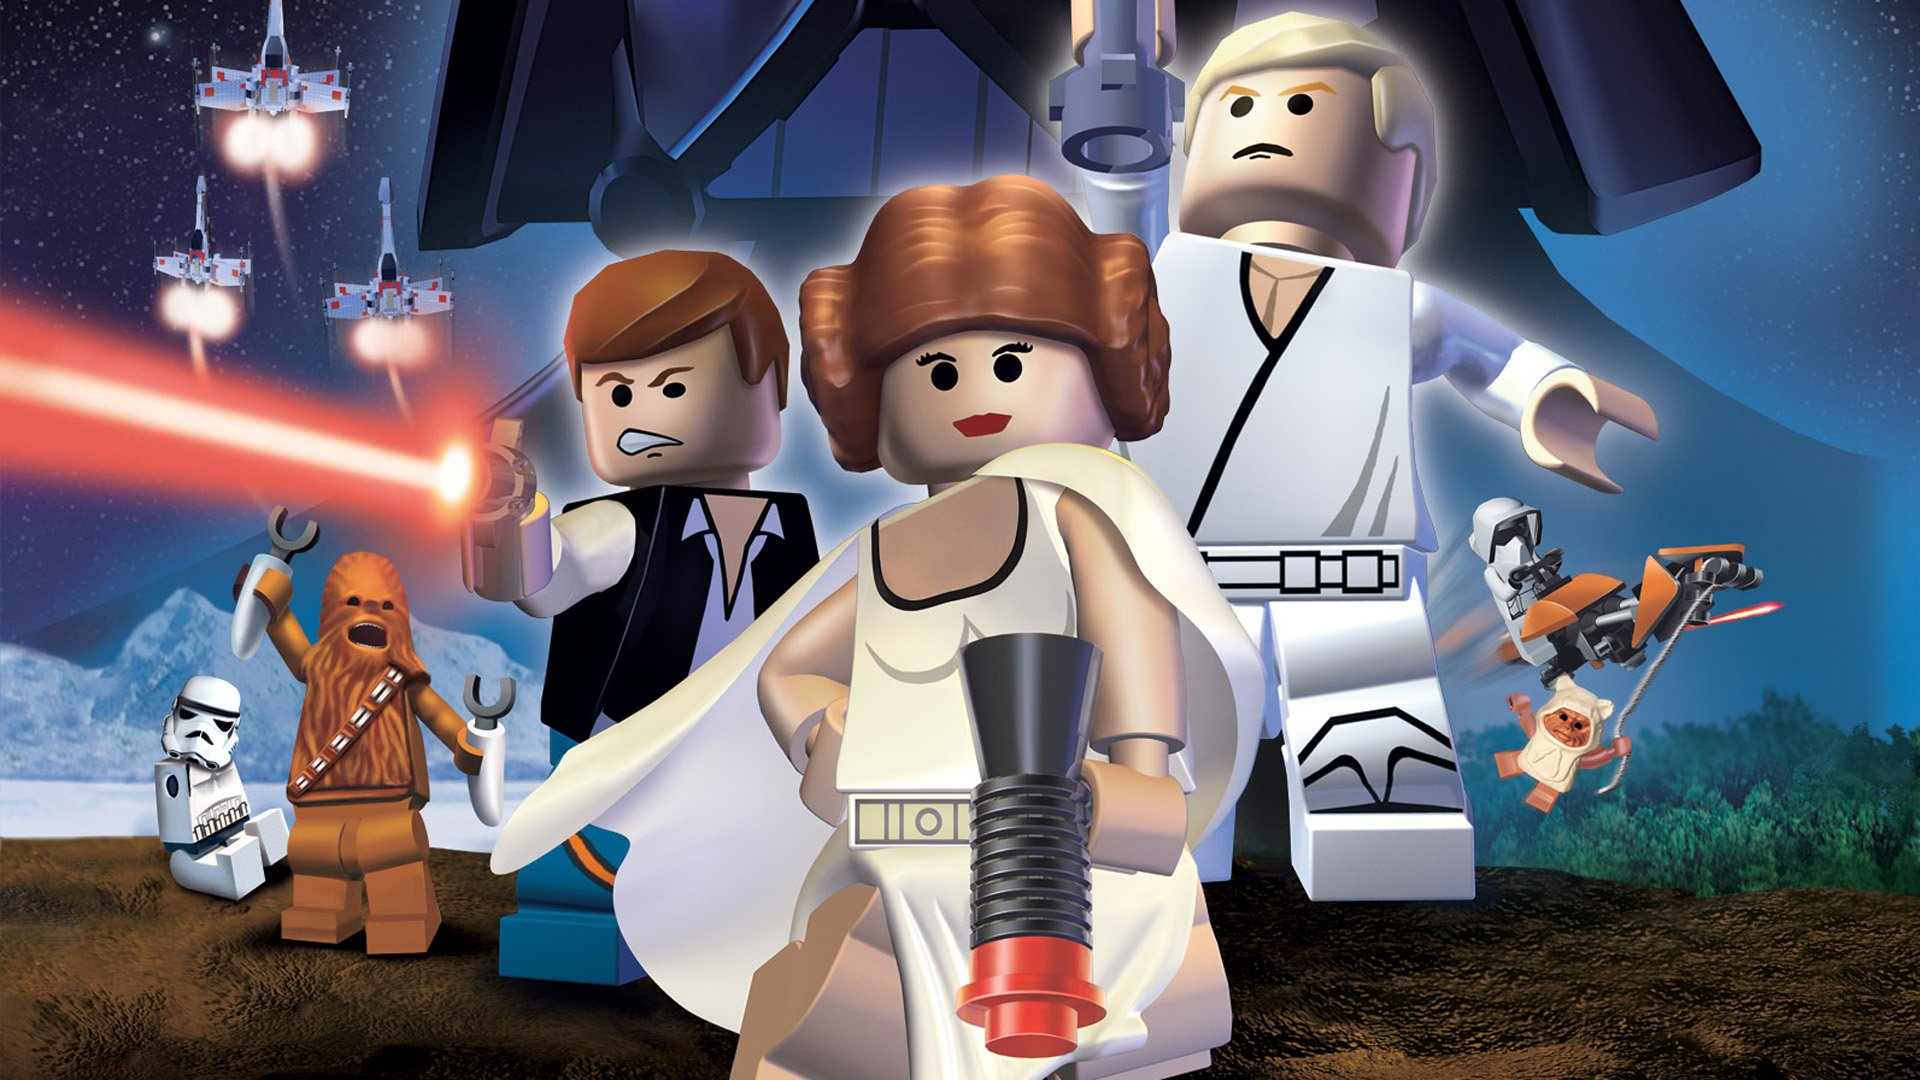 4 Lego Star Wars Ii The Original Trilogy Hd Wallpapers